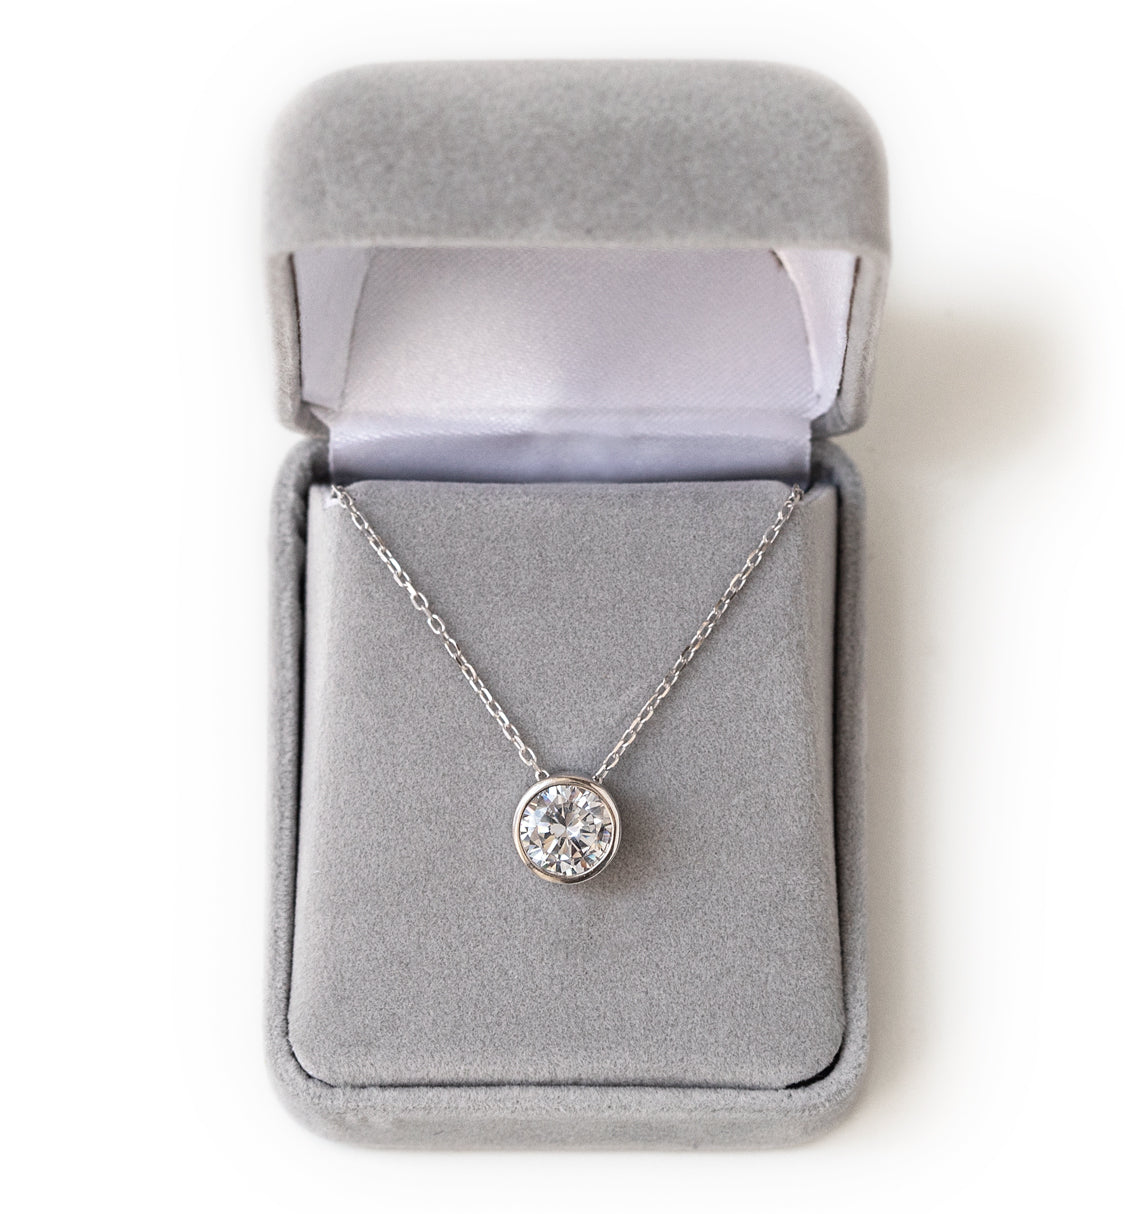 Bridesmaids Gift Solitaire Necklace - Amy O. Bridal